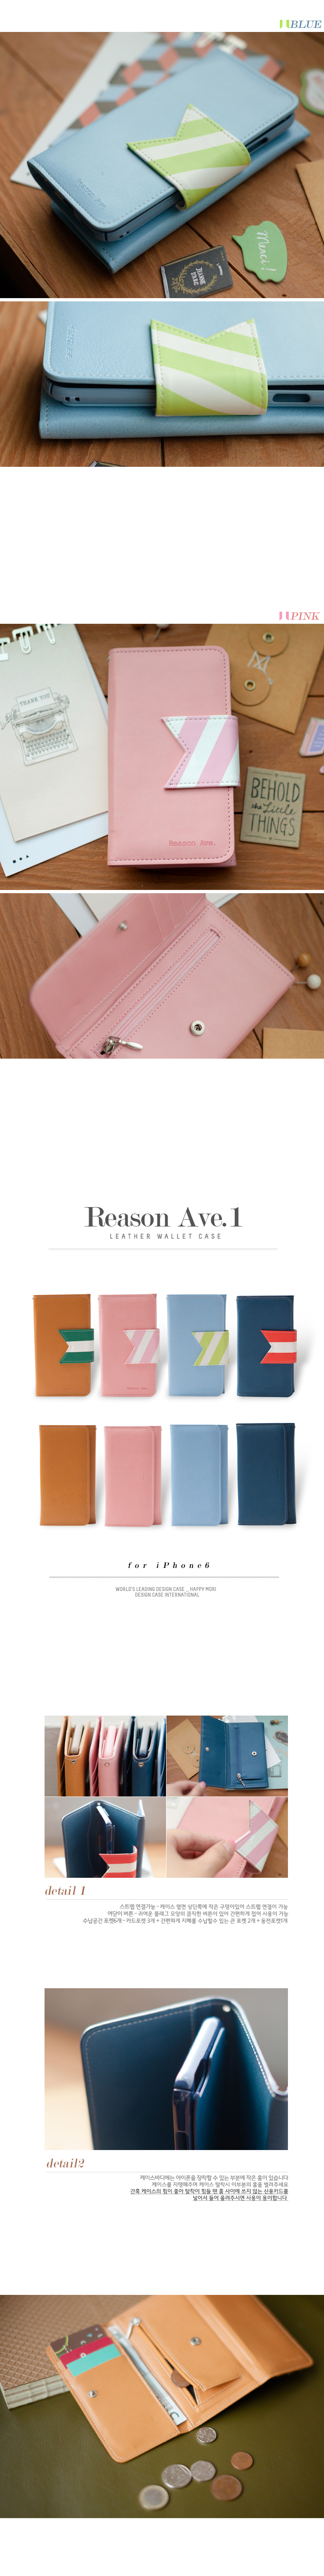 [HAPPYMORI]Faux Leather Case Reason Ave.1 Multiwallet (iPhone6  wallet case 4color)